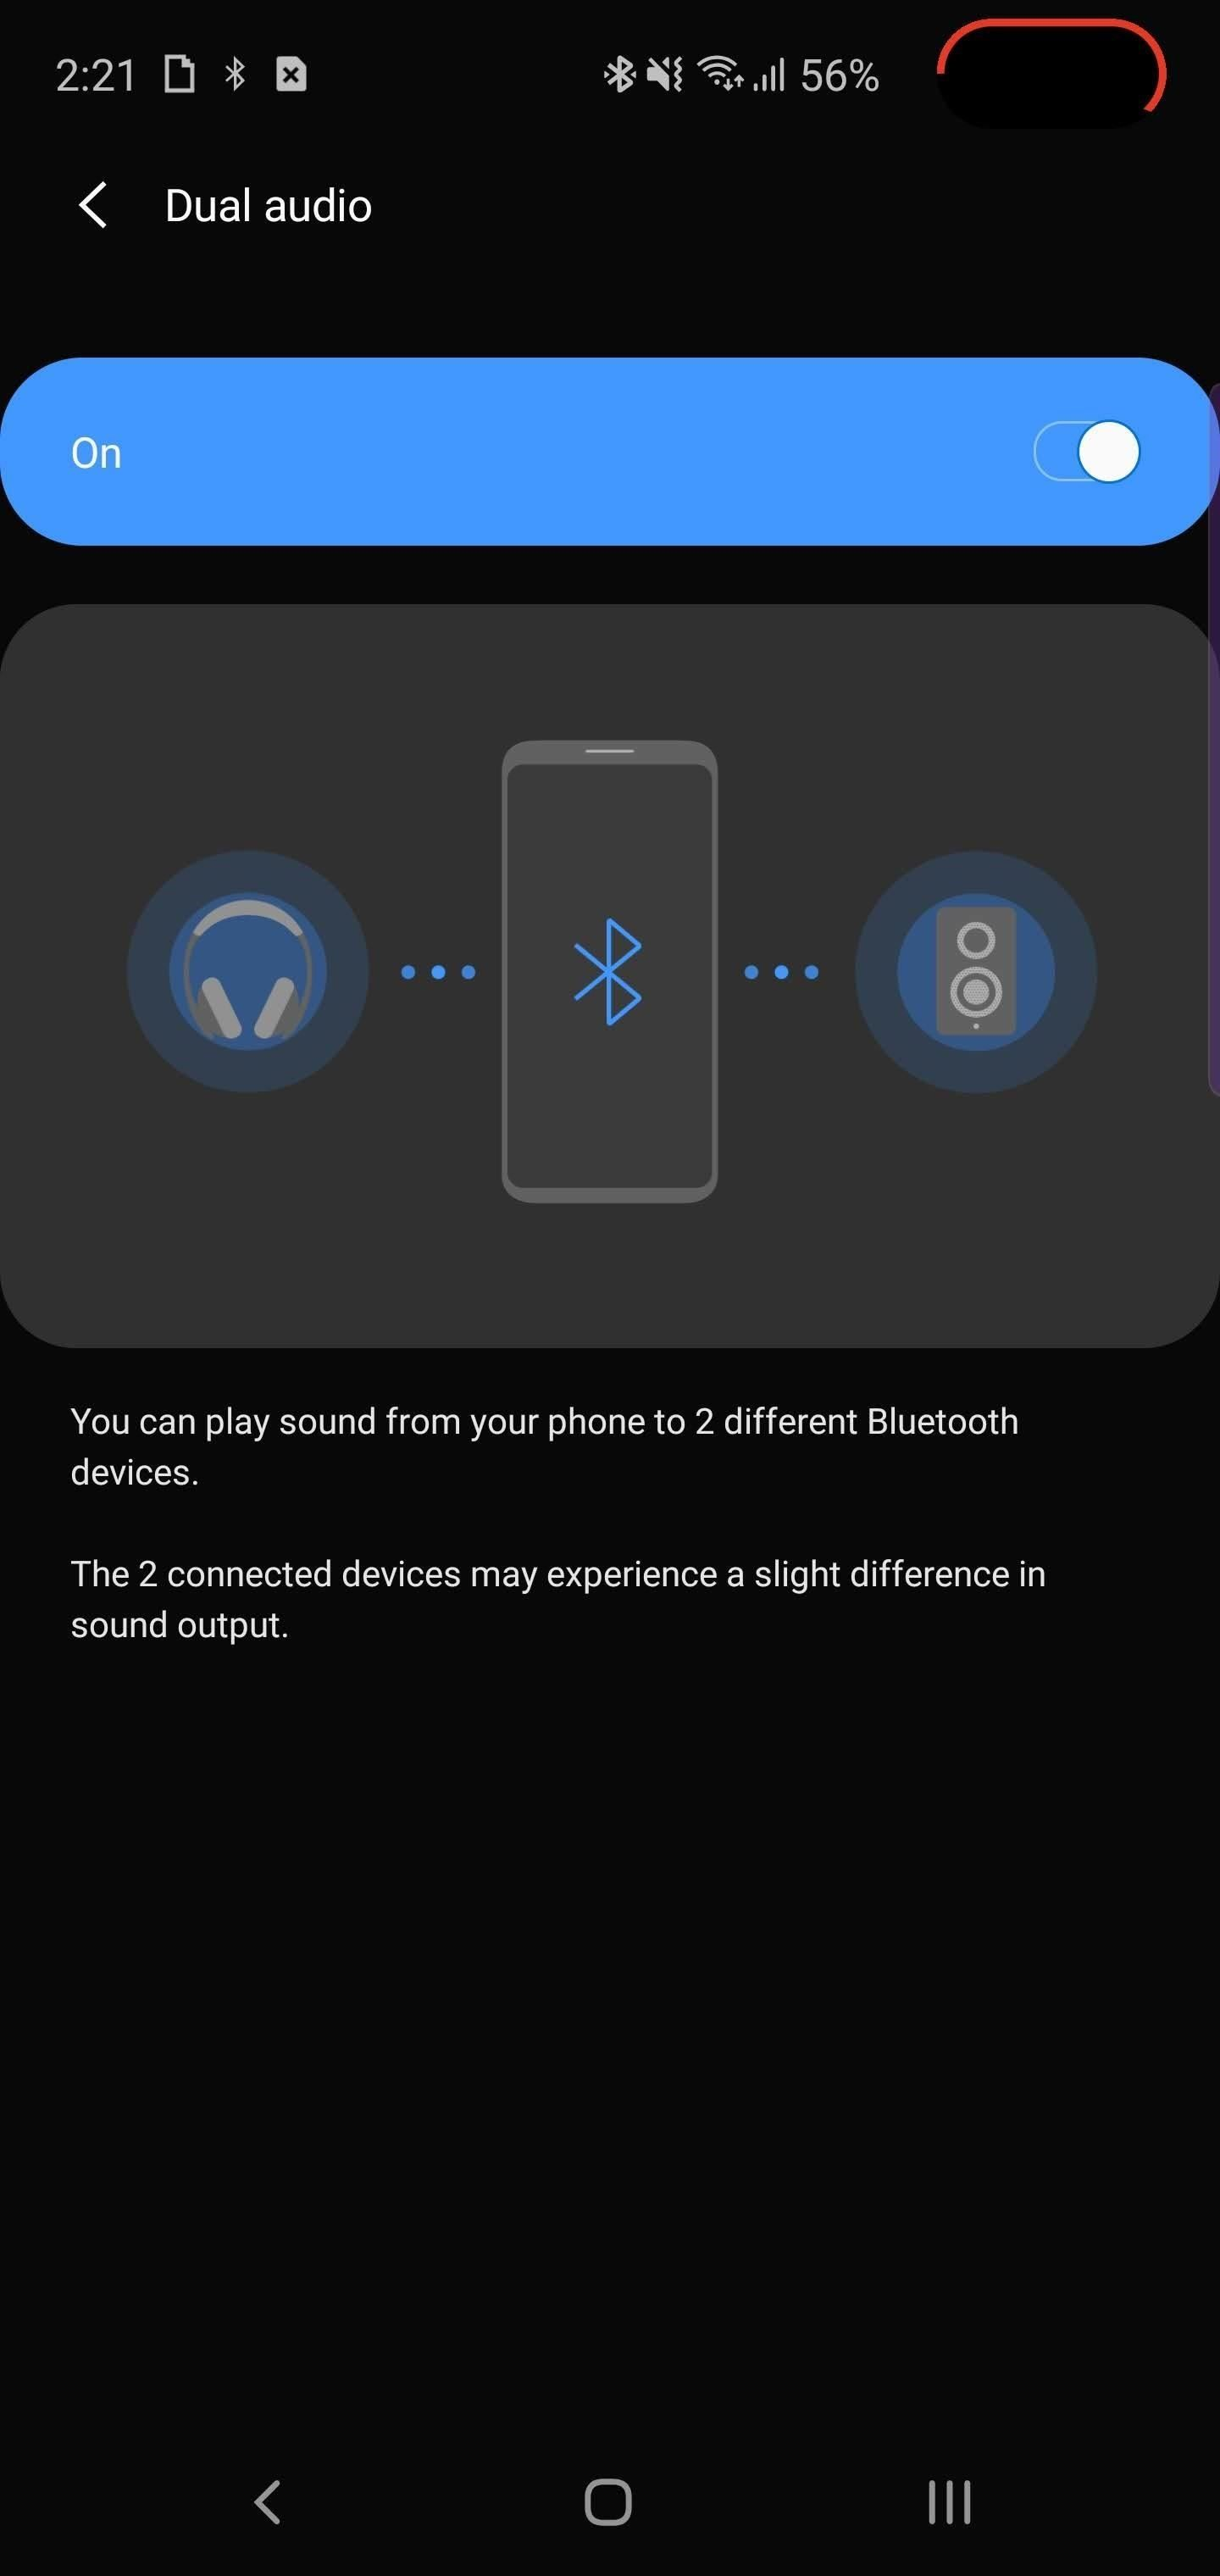 To play music on 2 devices Bluetooth from 5 on your Galaxy